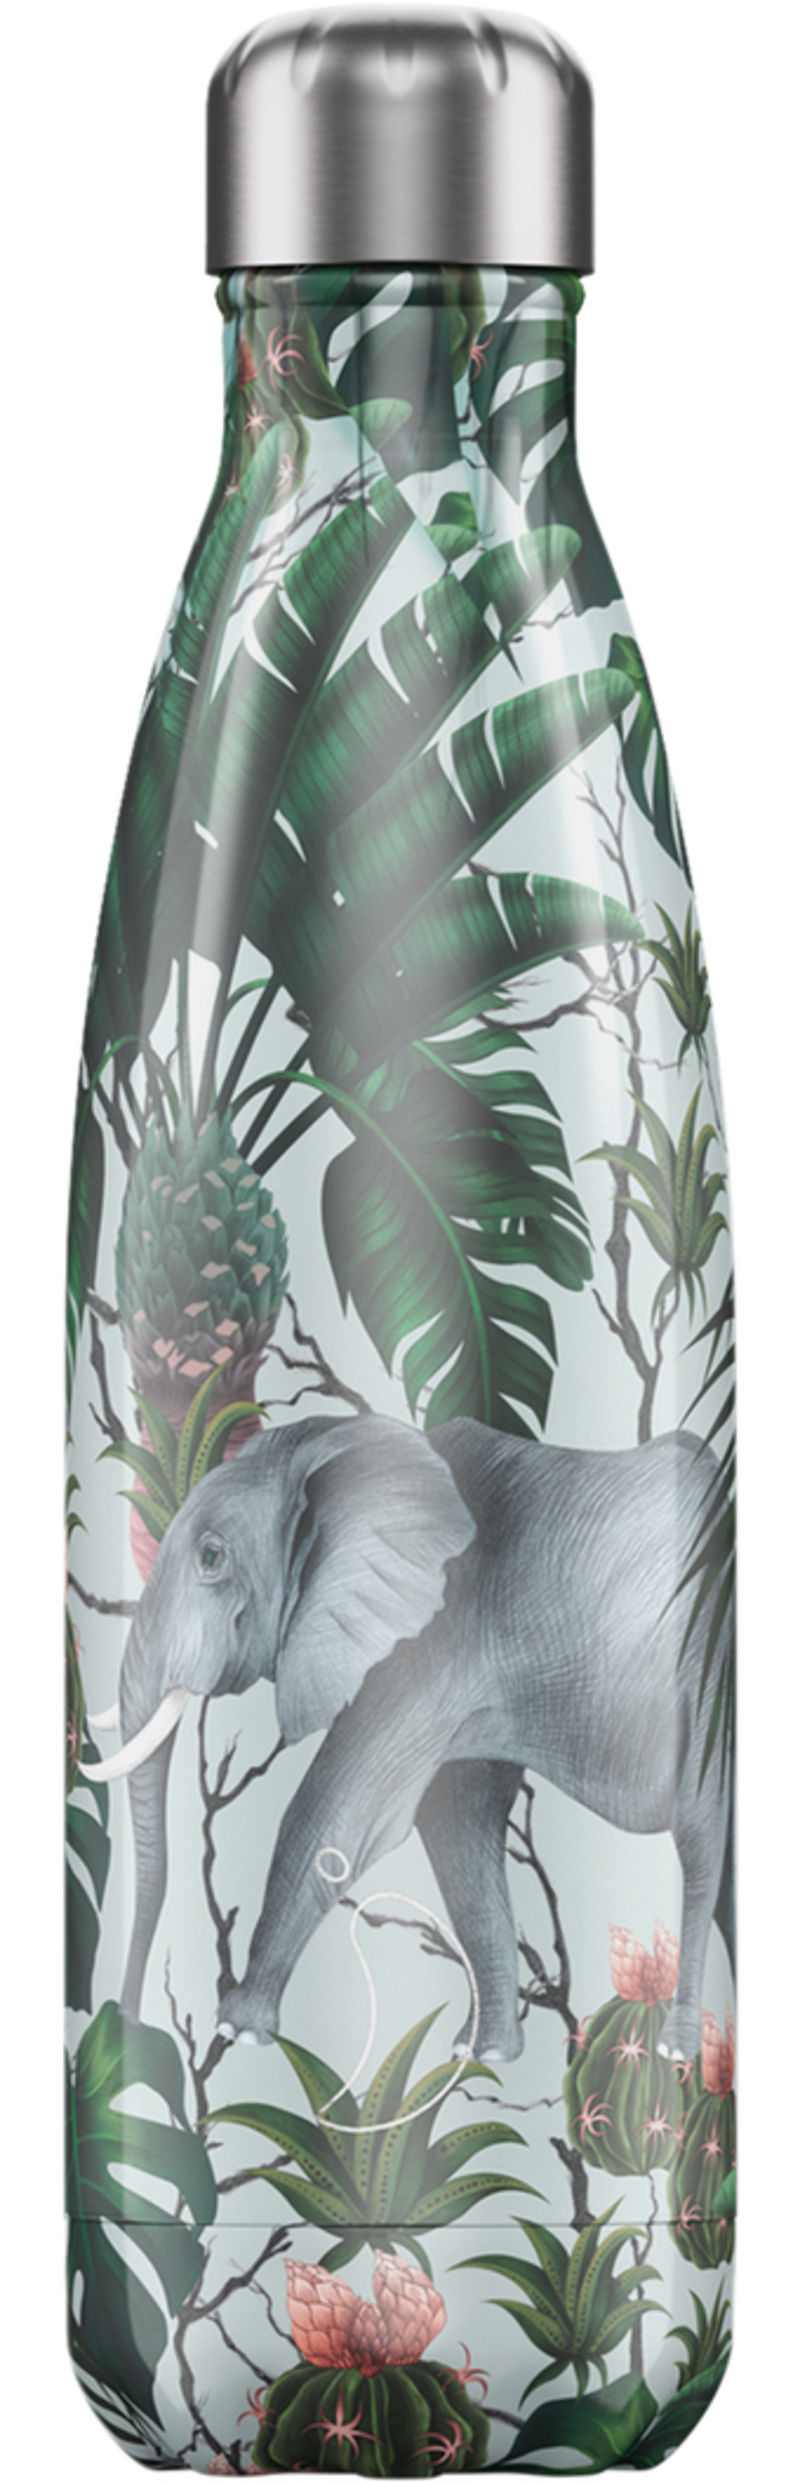 BOTELLA INOX ELEFANTE 750ml